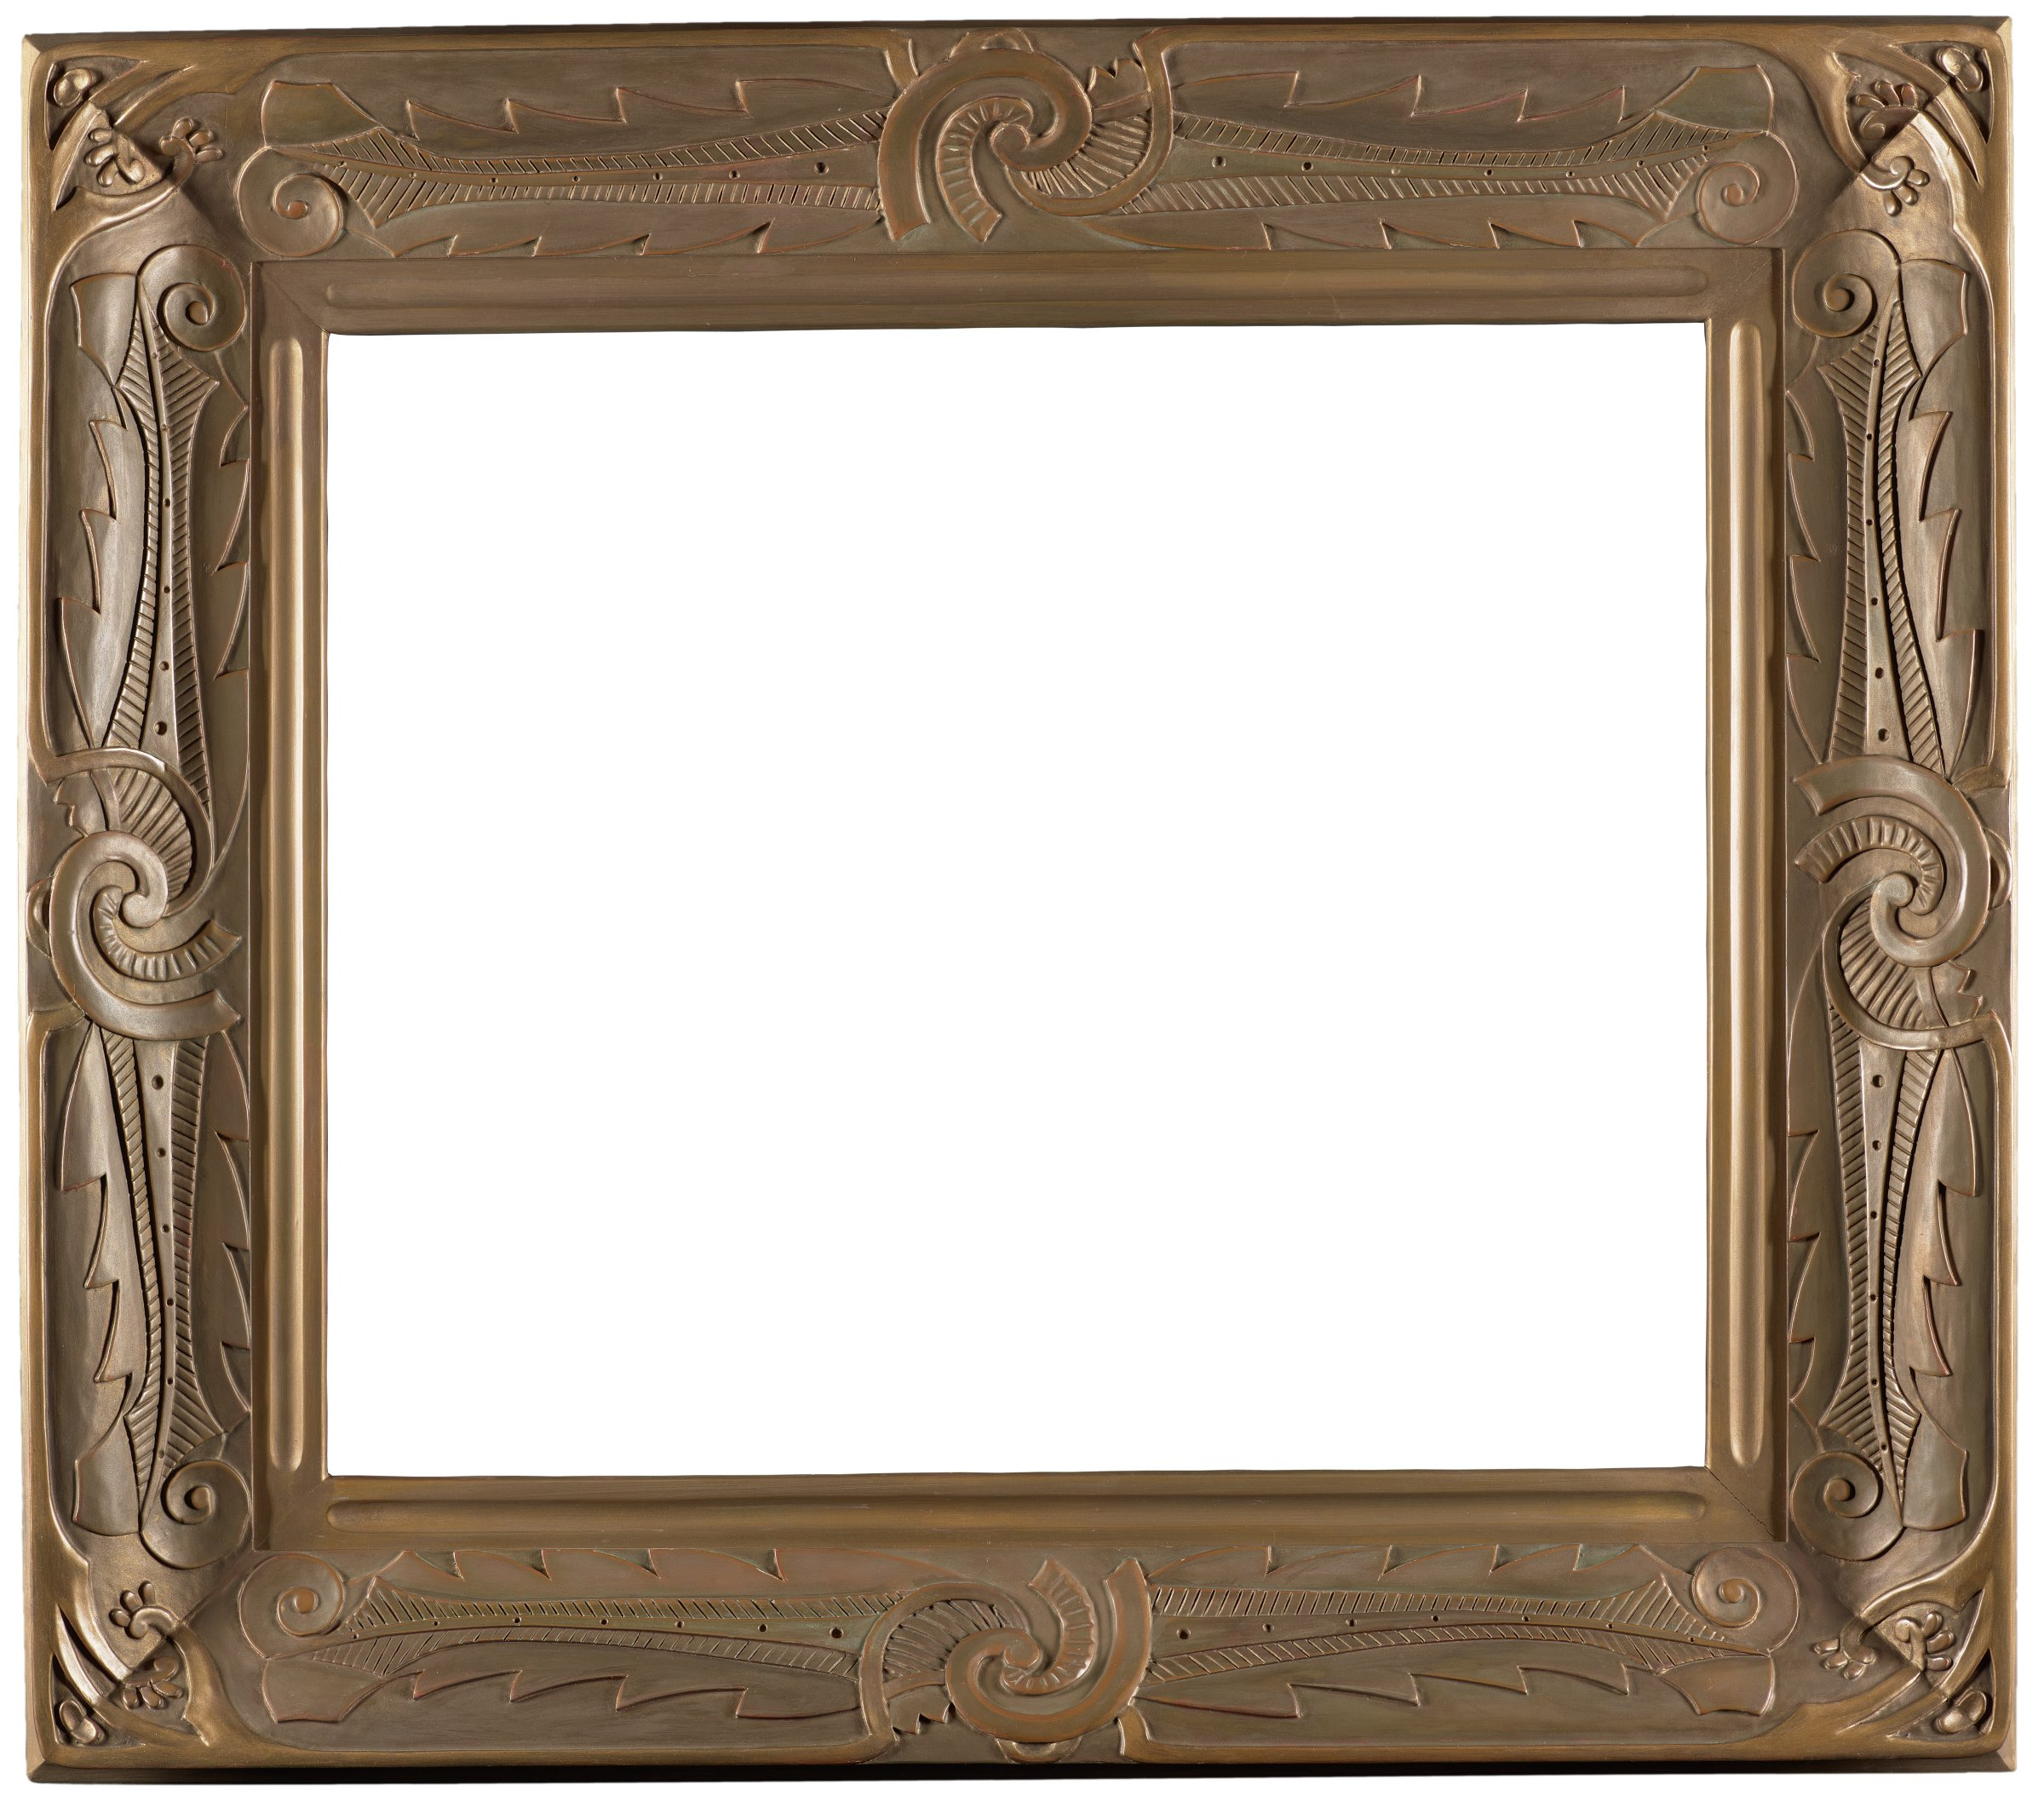 """Hand-carved wooden frame in the so-called """"whirlwind"""" pattern. According to Virginia Couse Leavitt, the artist's granddaughter, his earliest frame design """"incorporates a scroll (whirlwind) at the center of each side, from which a barbed feather motif extends to the corners."""""""